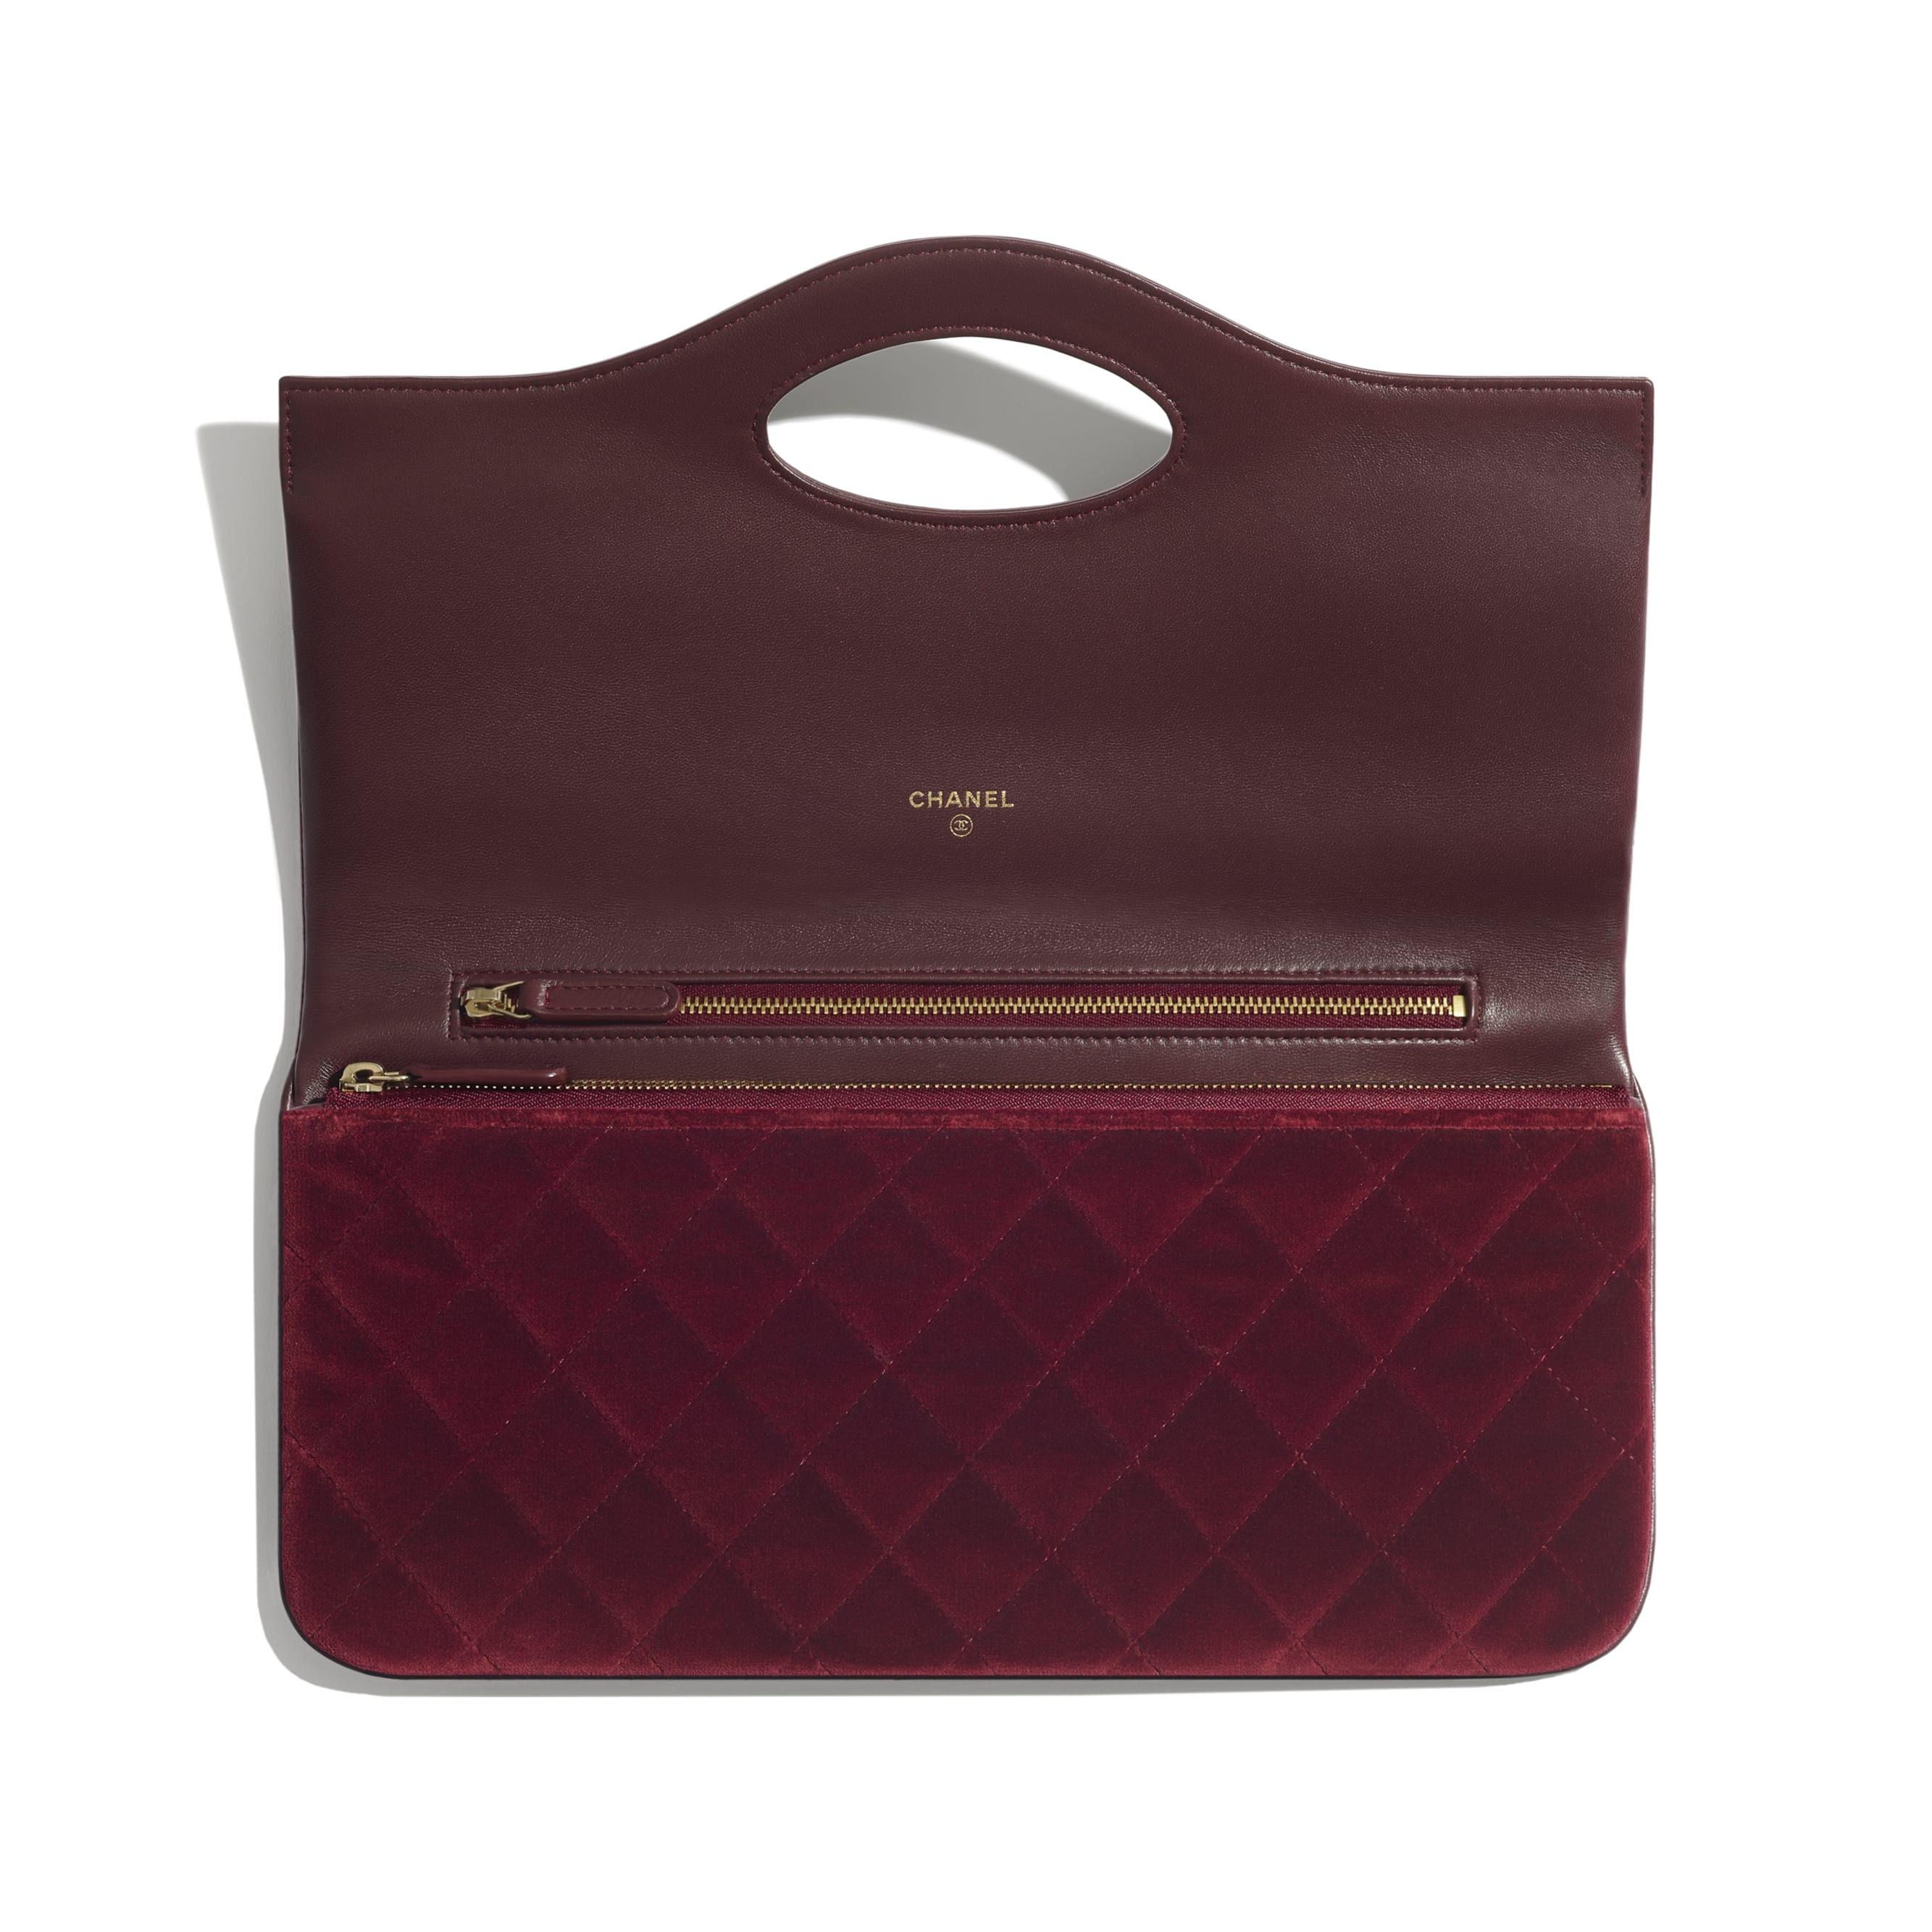 CHANEL 31 Pouch - Burgundy - Velvet, Lambskin & Gold-Tone Metal - Other view - see standard sized version